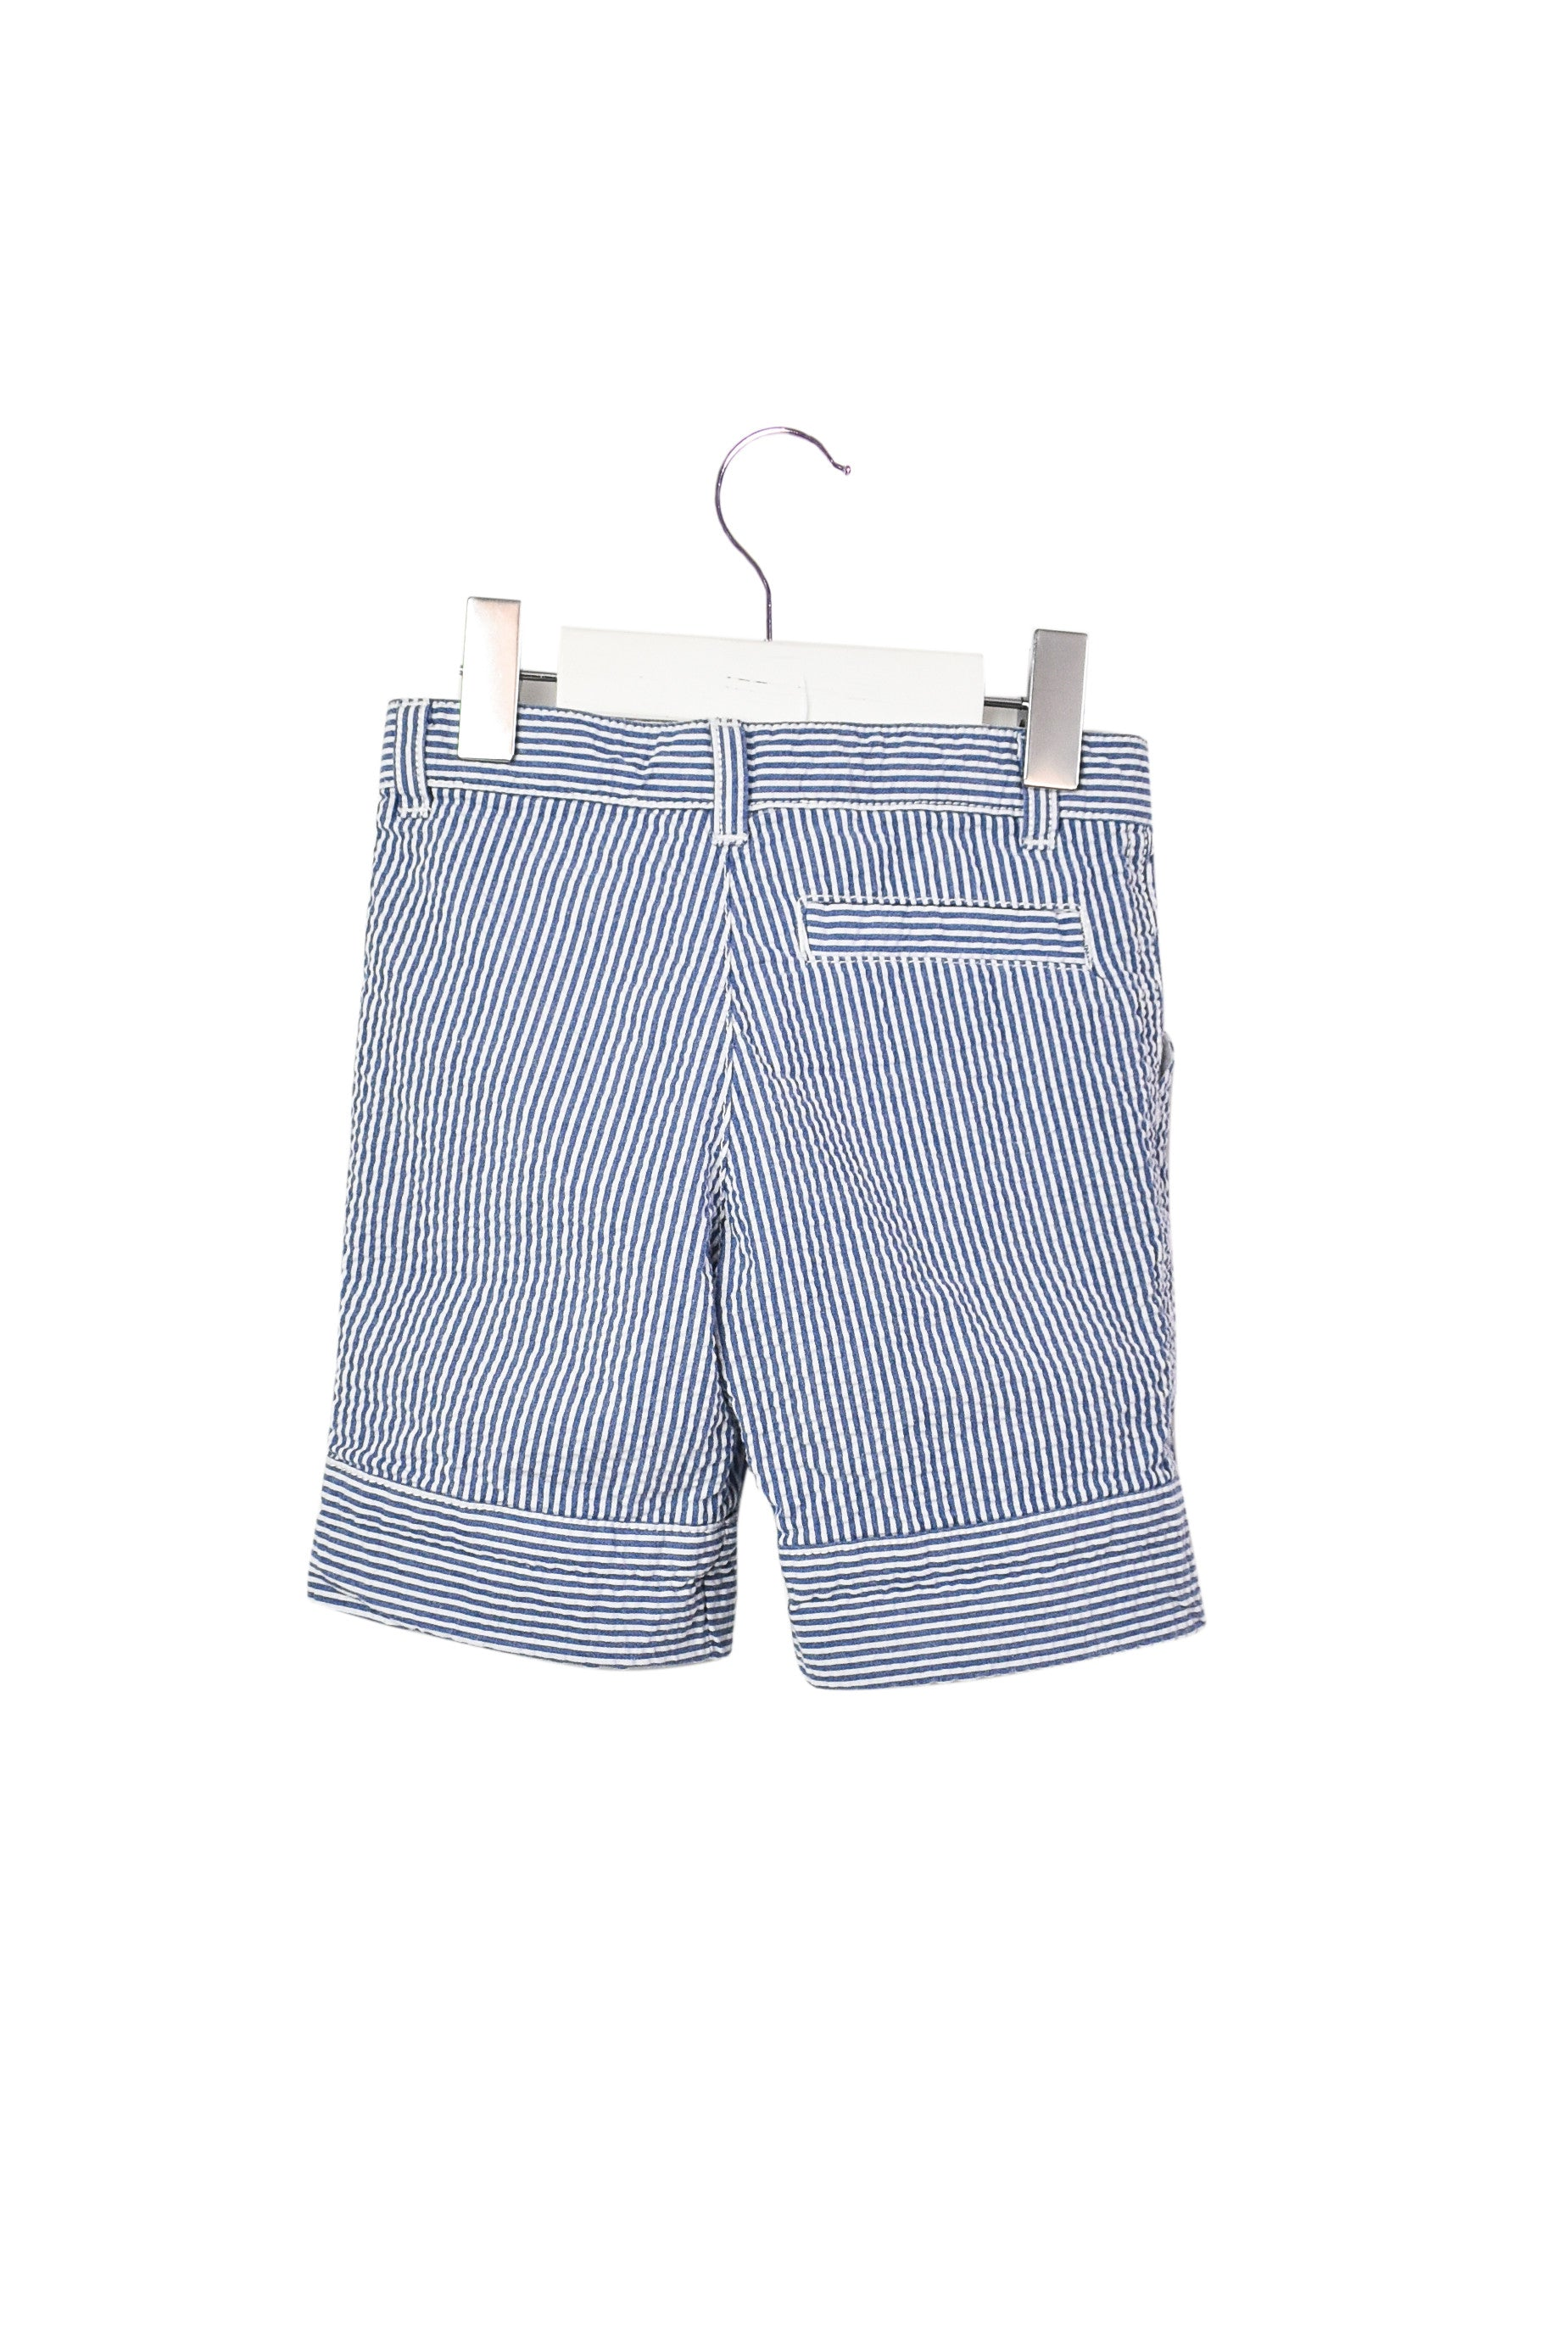 10004456 Jacadi Baby~Shorts 3T at Retykle